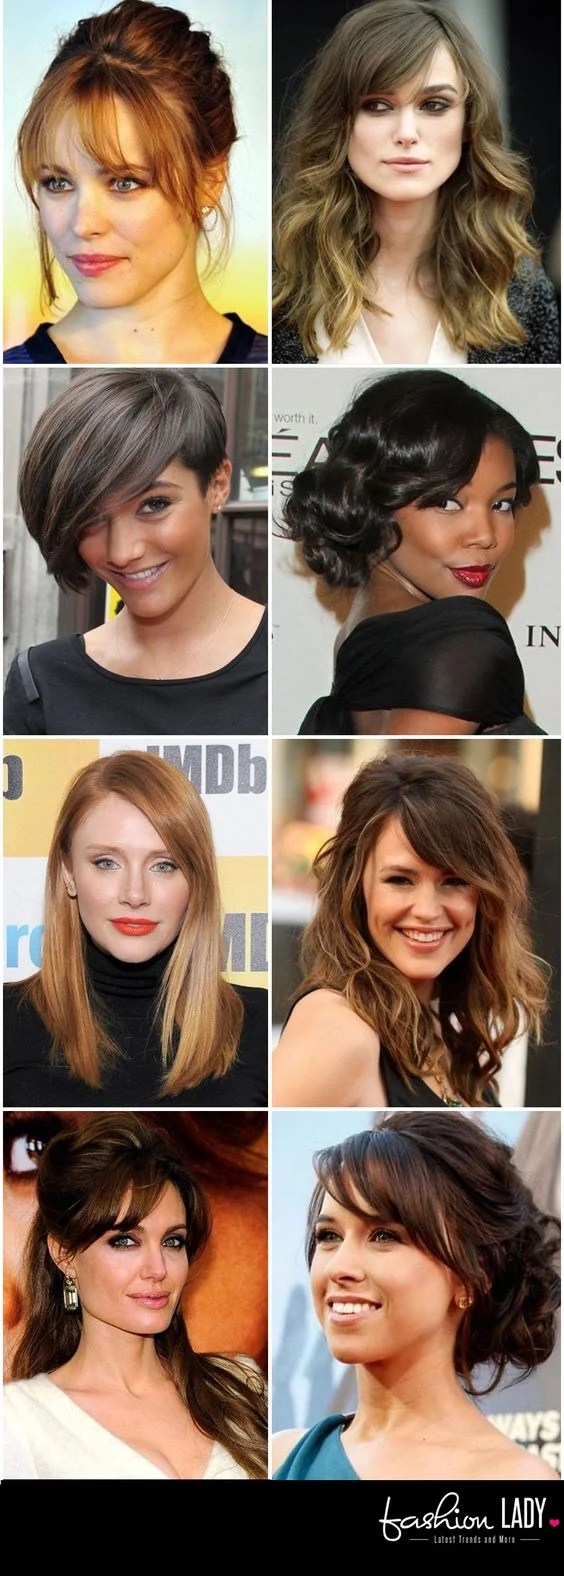 30 amazing hairstyles for big foreheads - tip to hide large